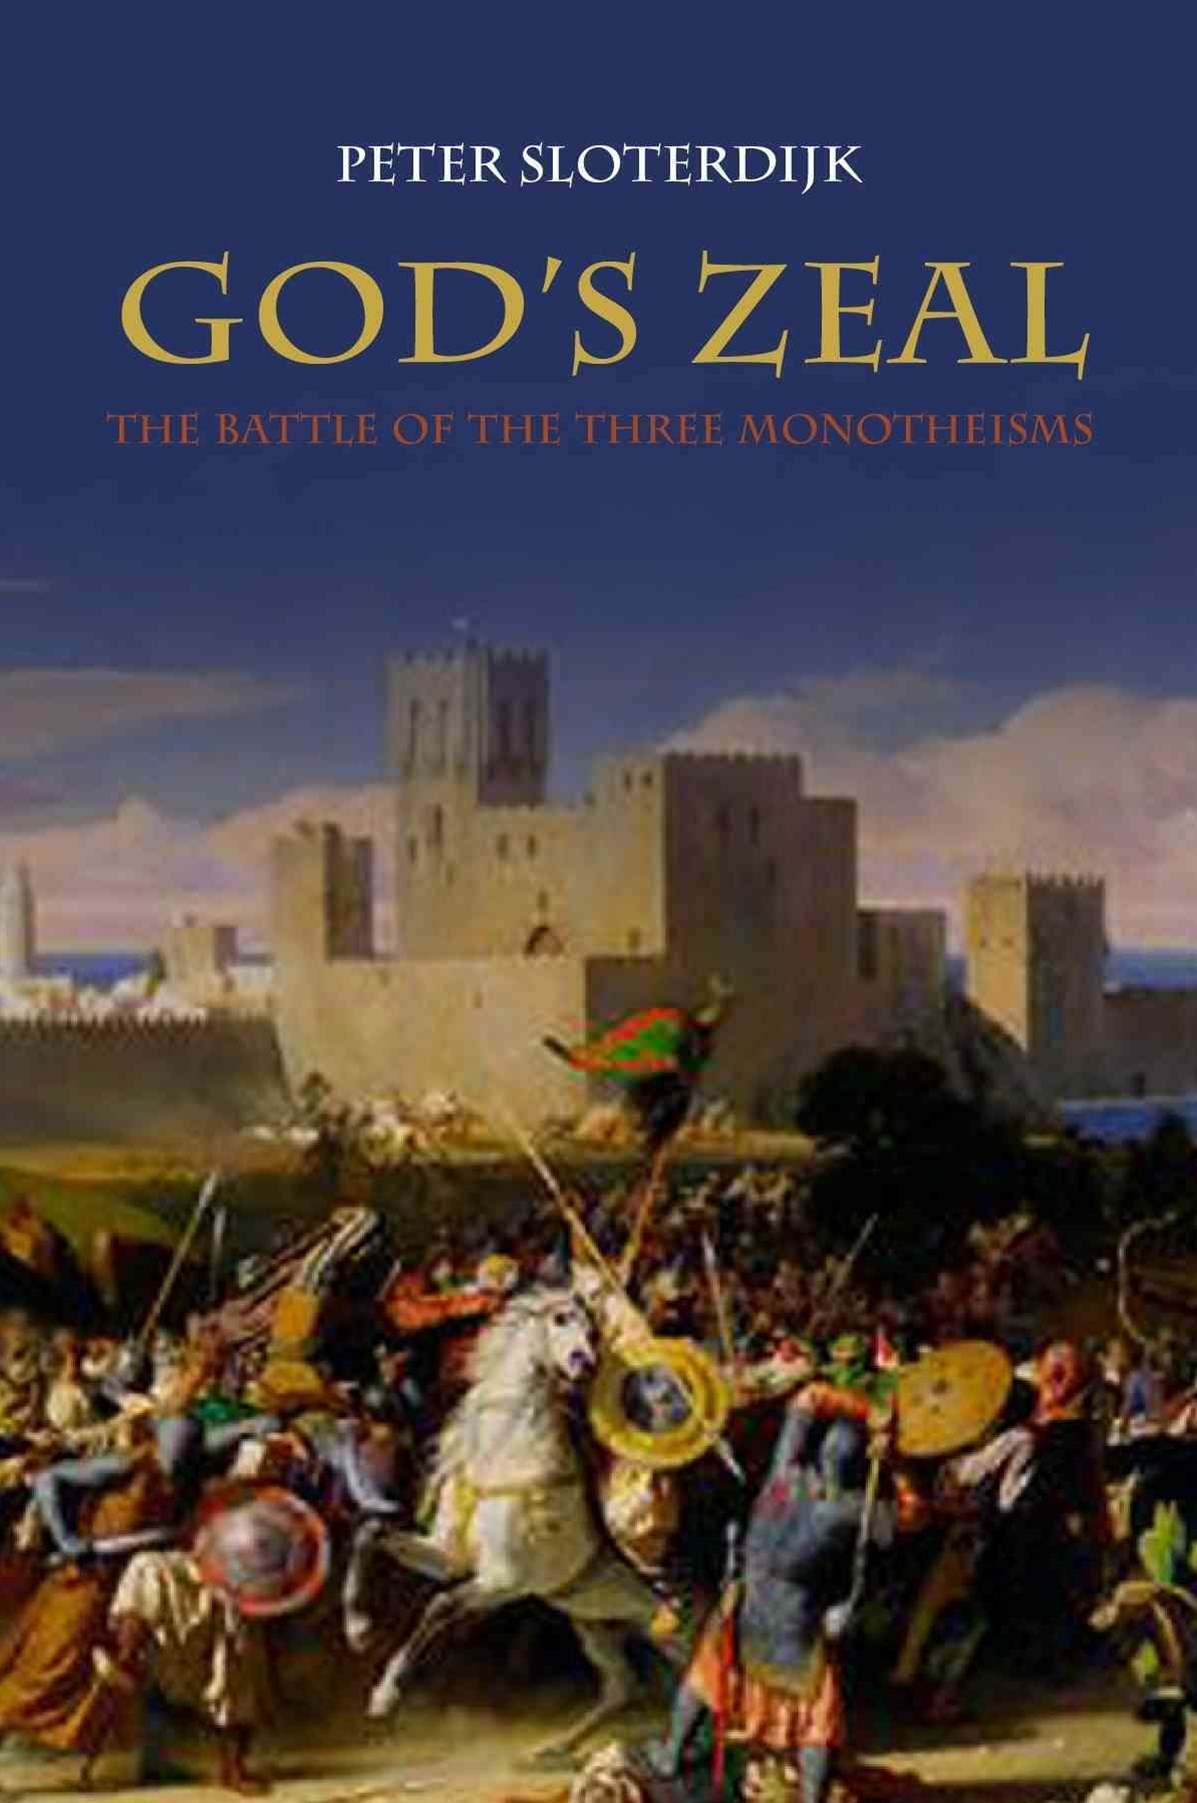 God's Zeal - the Battle of the Three Monotheisms